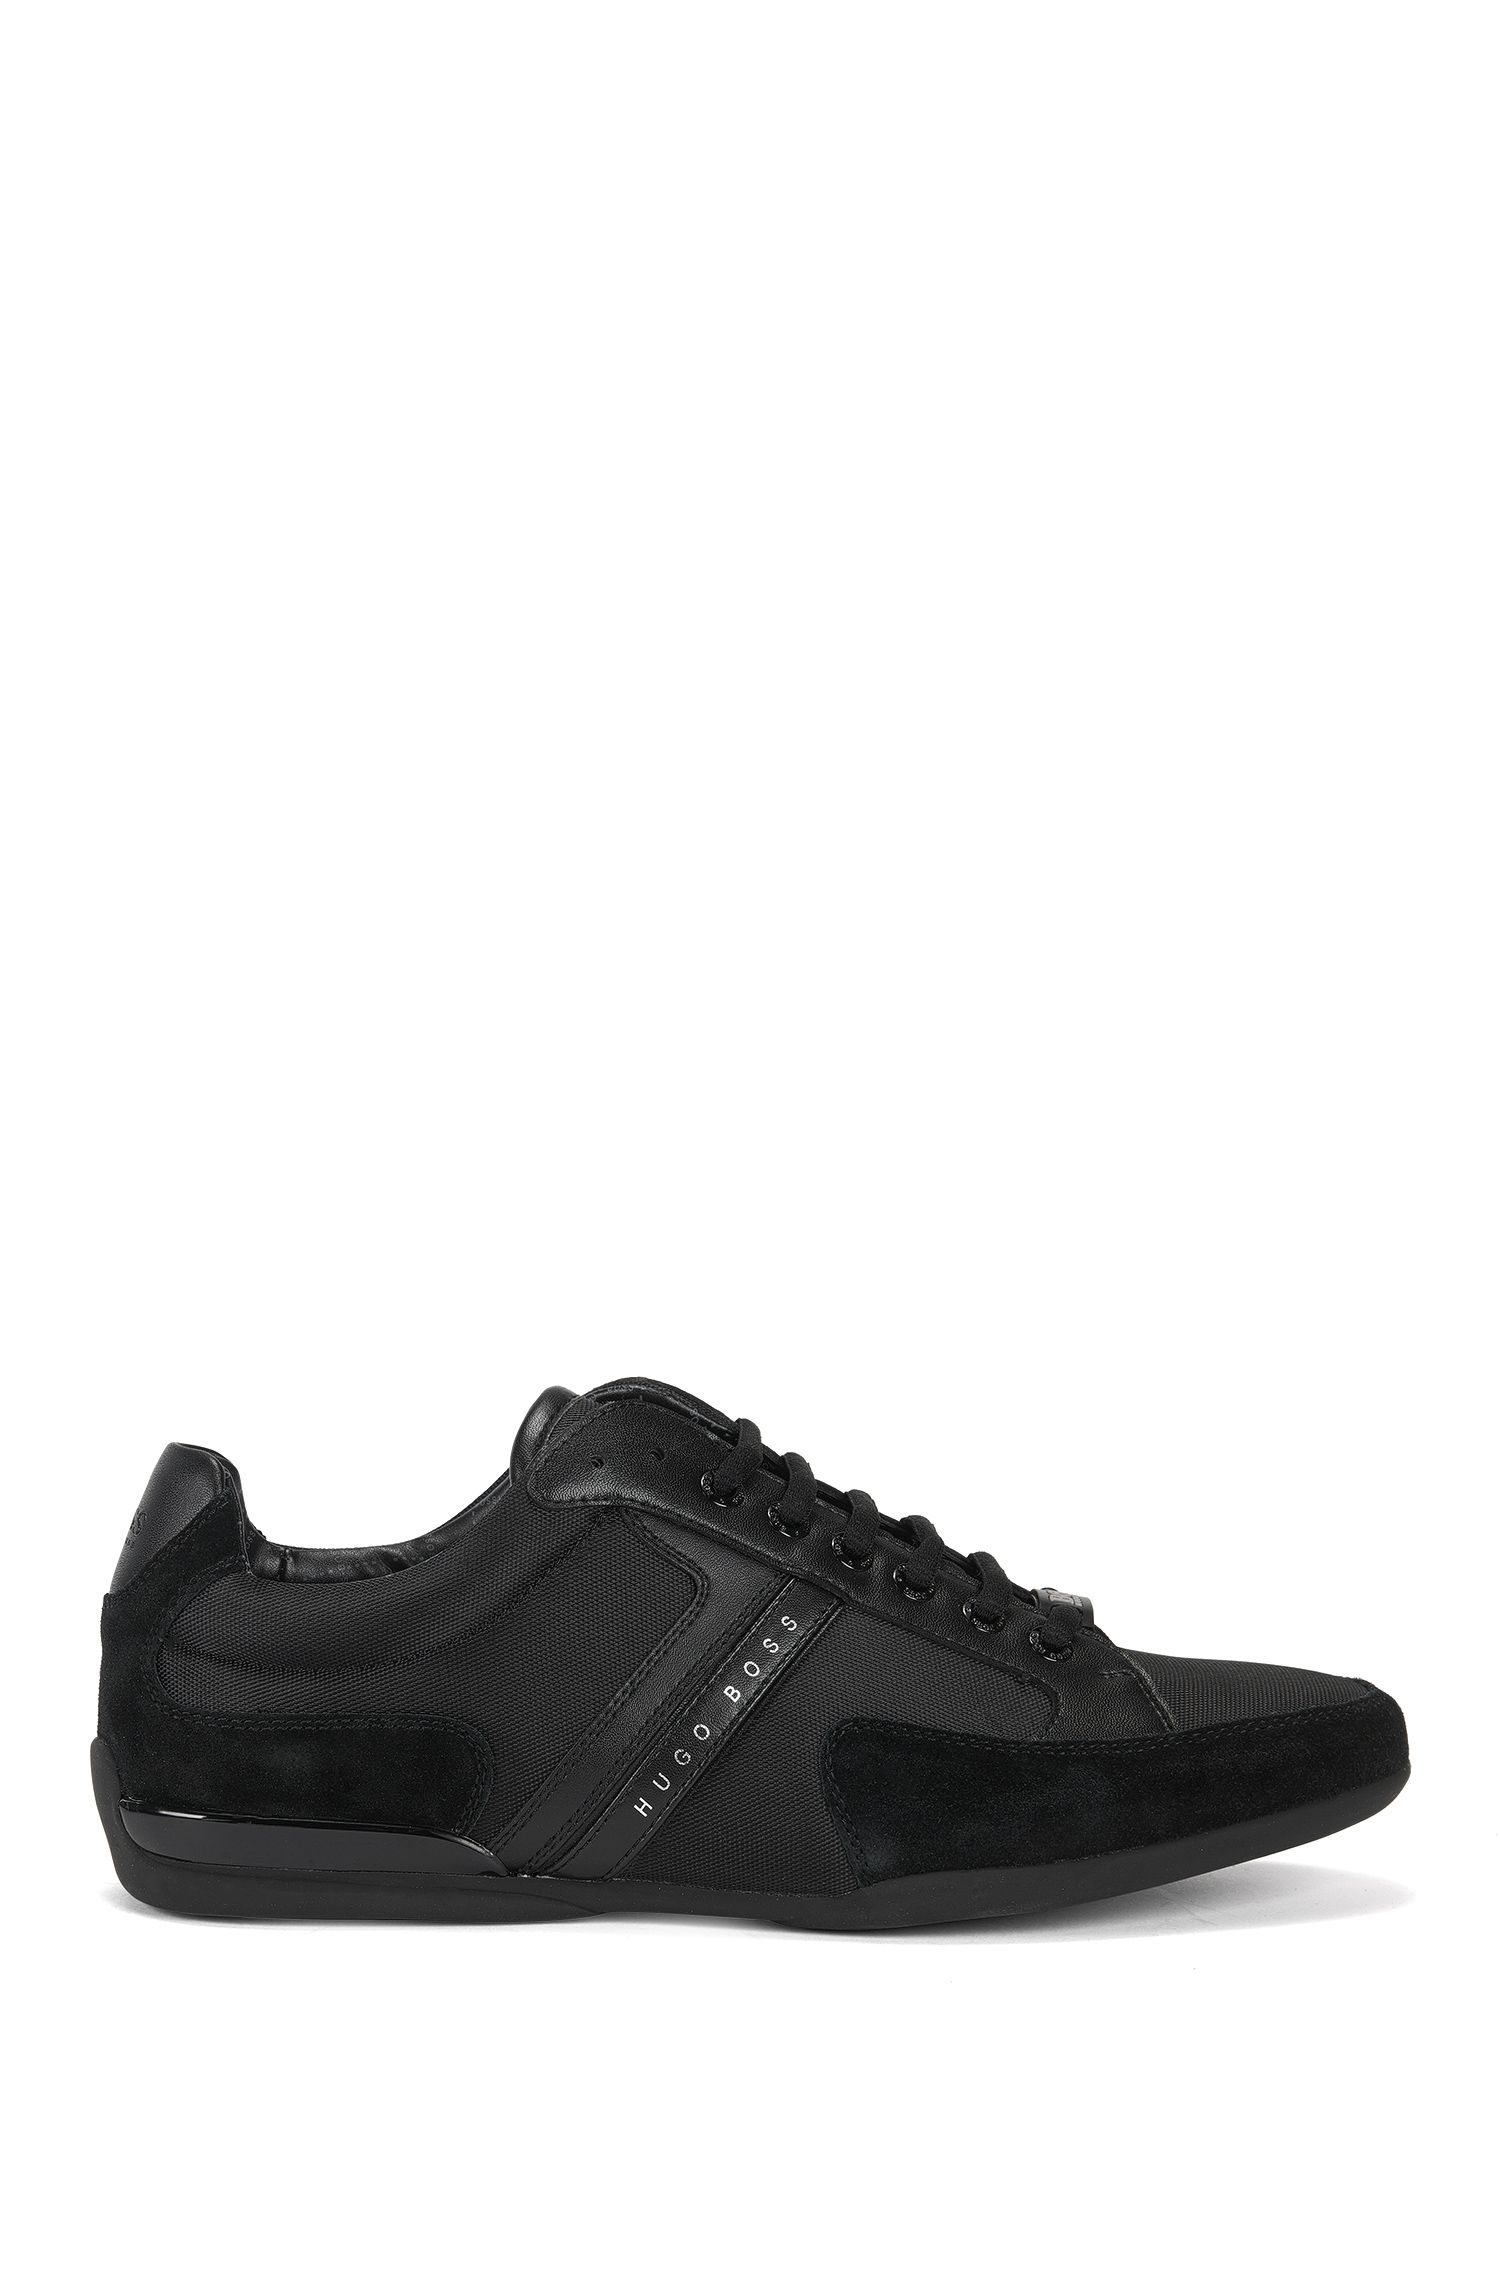 'Spacit' | Leather and Suede Sneakers